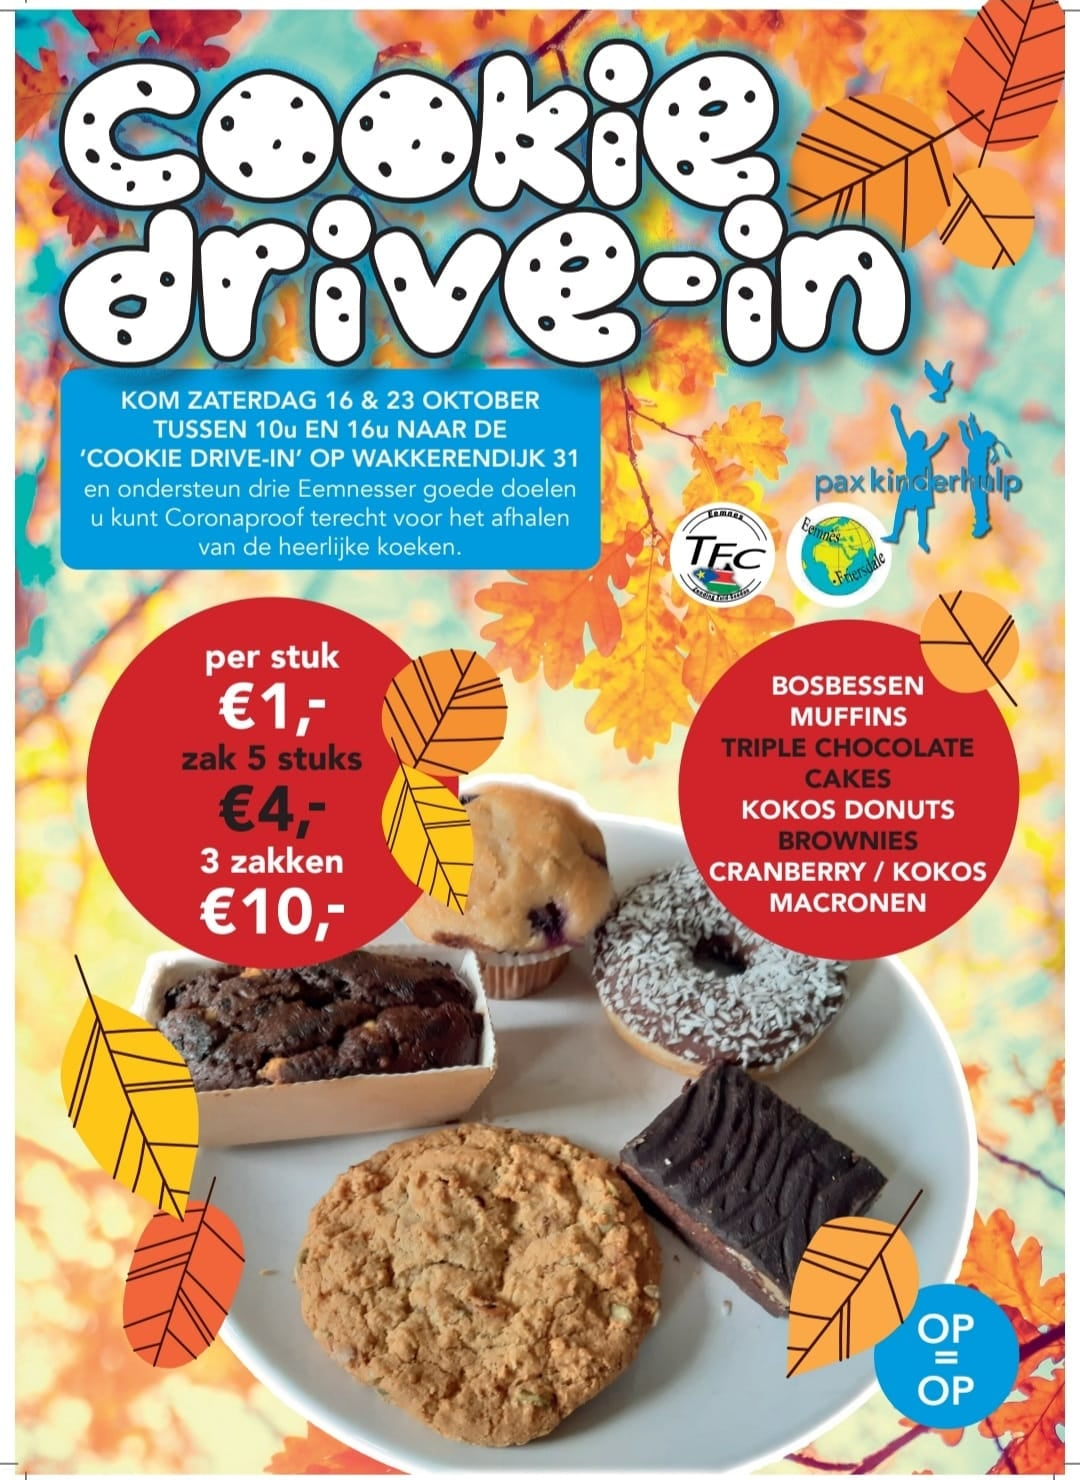 COOKIE DRIVE-IN